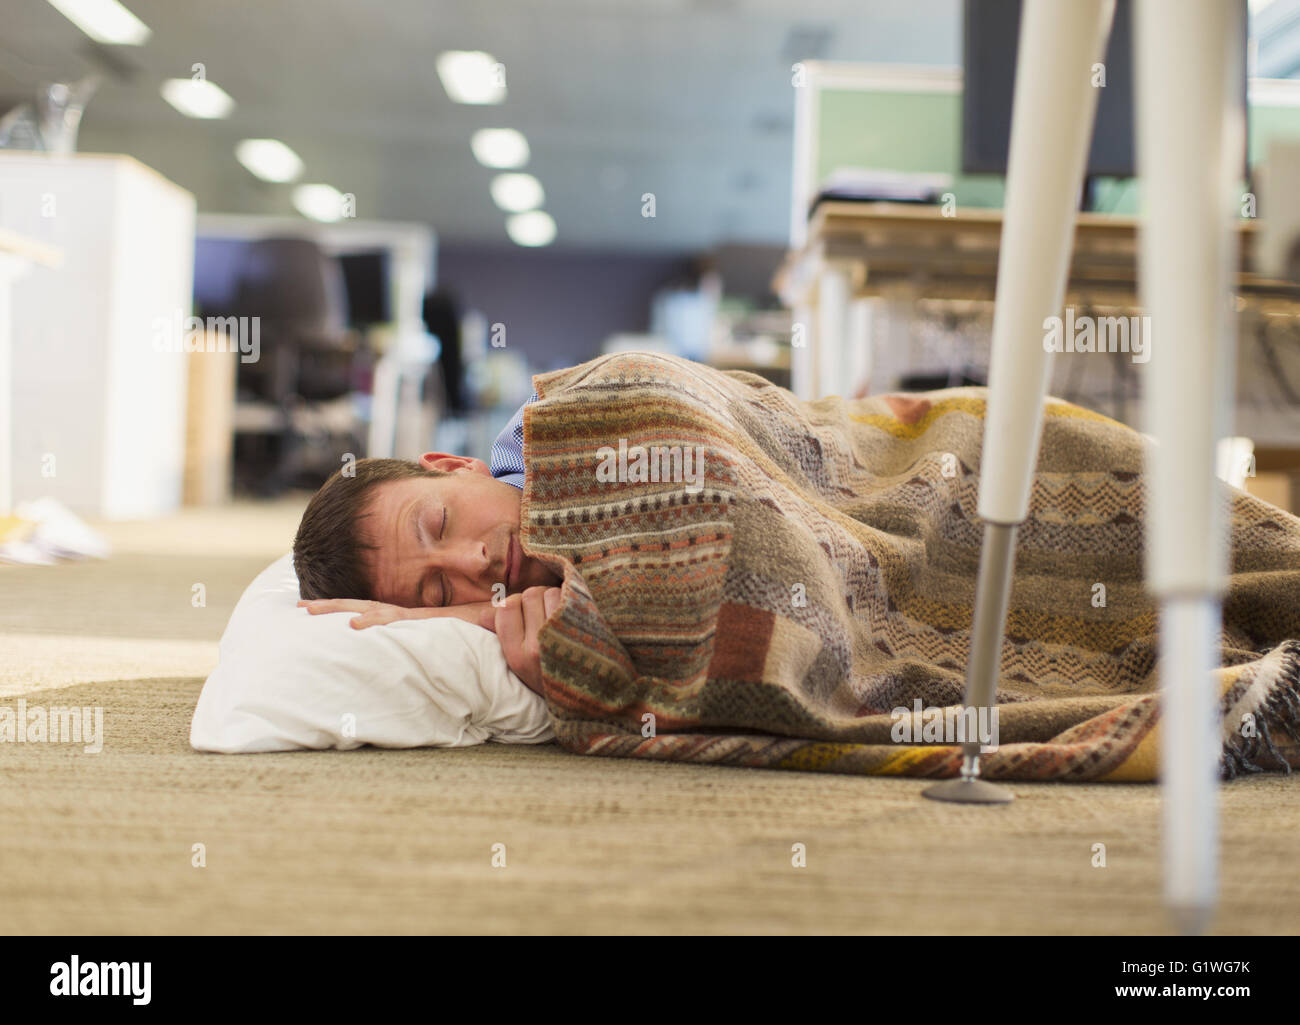 office nap pillow. Businessman With Pillow And Blanket Sleeping On Office Floor Nap S